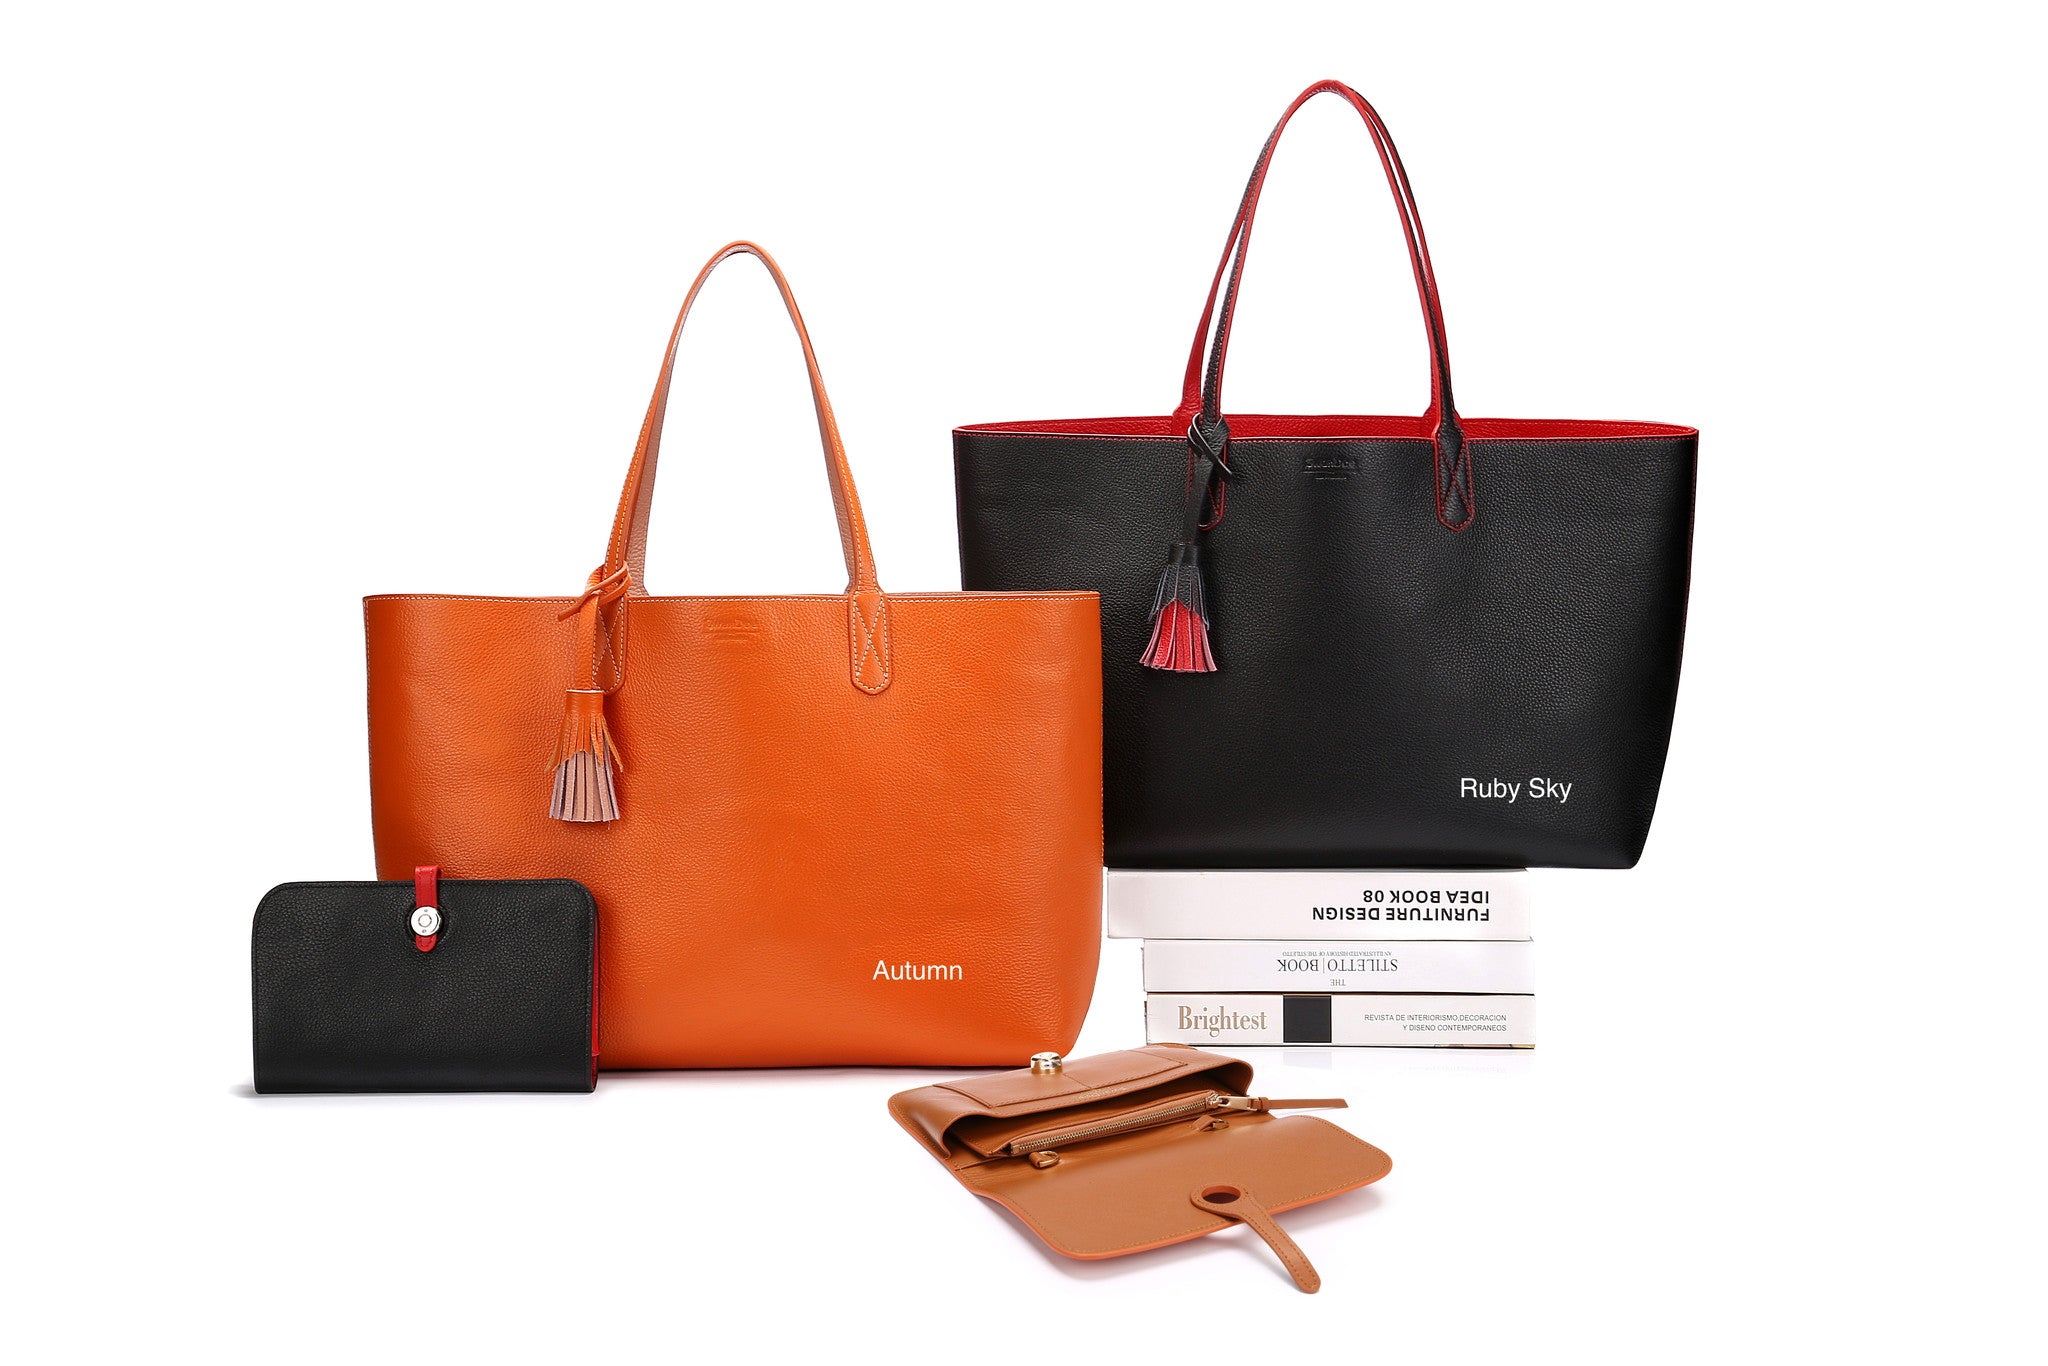 TOTE Bundle: Tote + Crossbody Bag